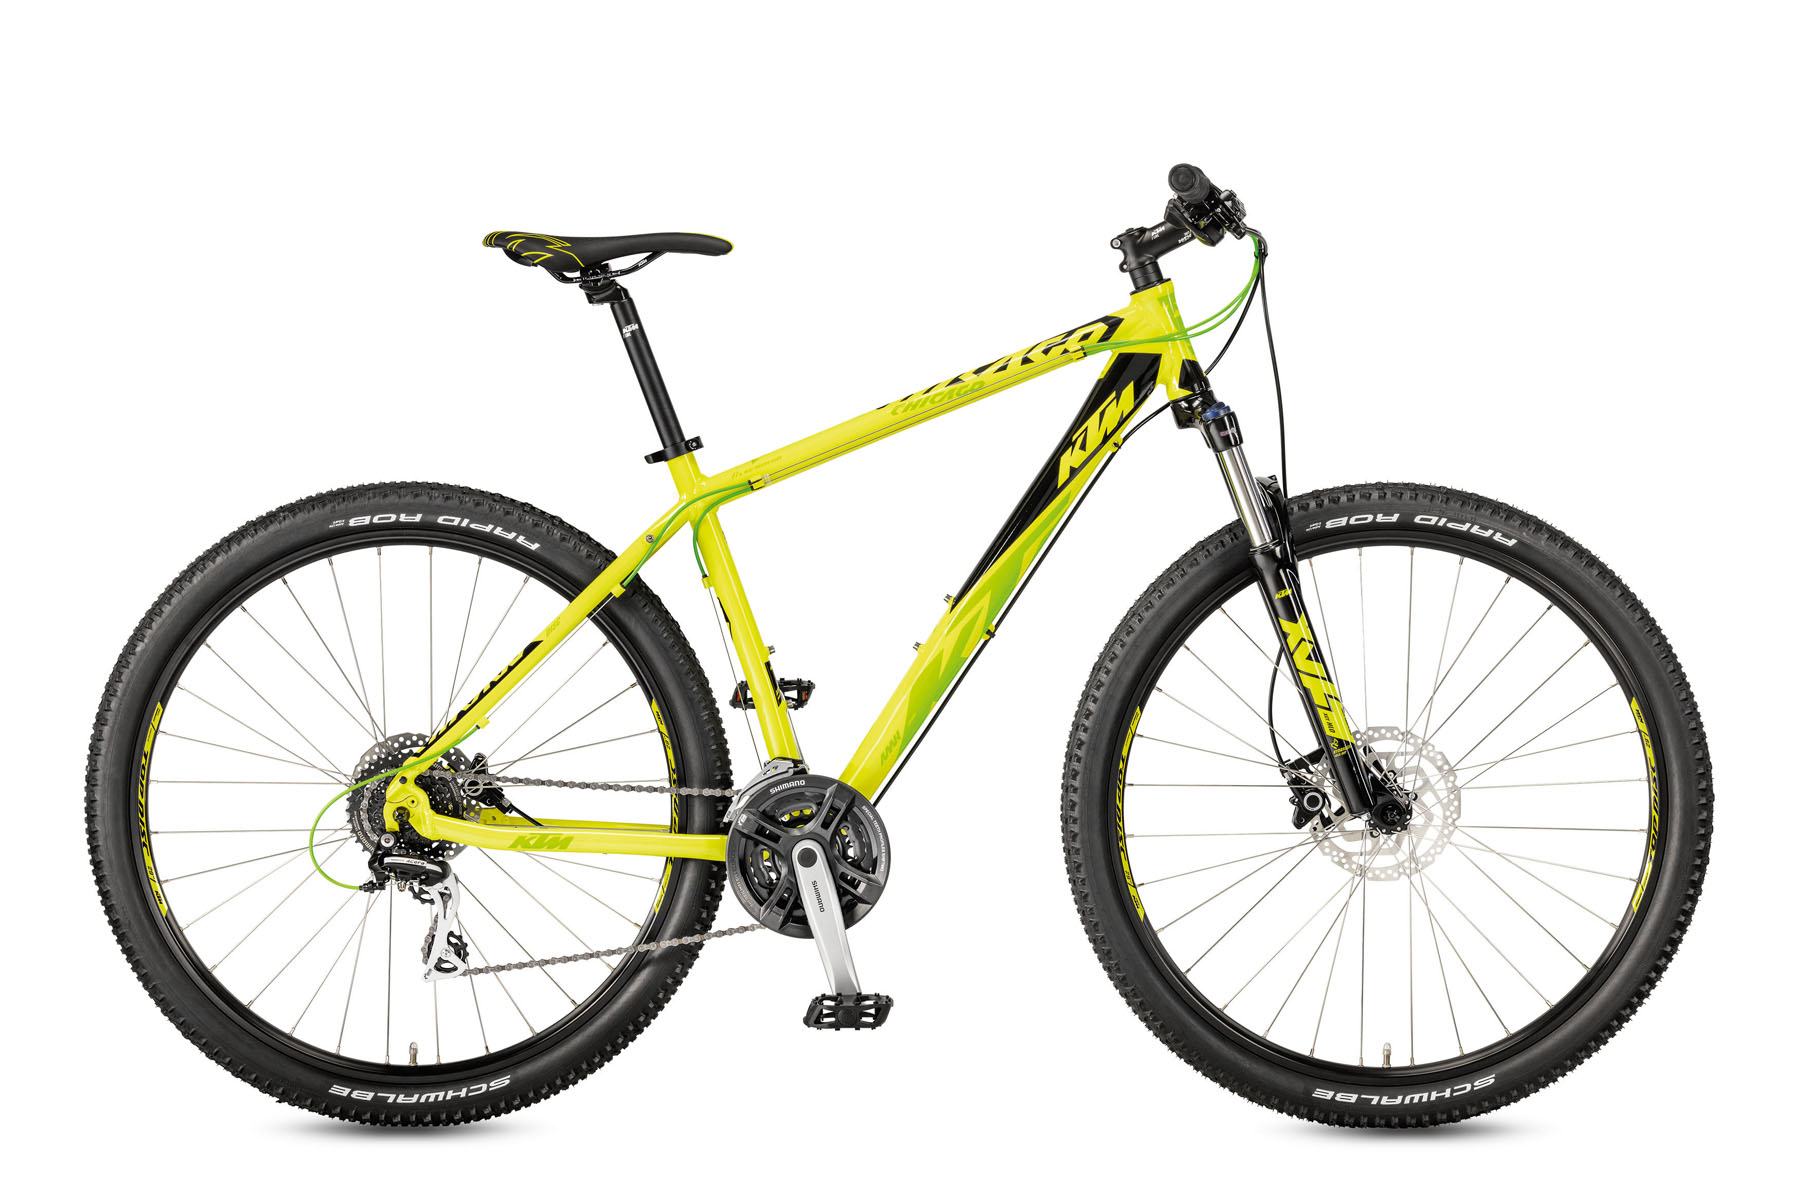 Bicicleta KTM CHICAGO 29.24 Disc H RC    24s Acera 2017 - 1